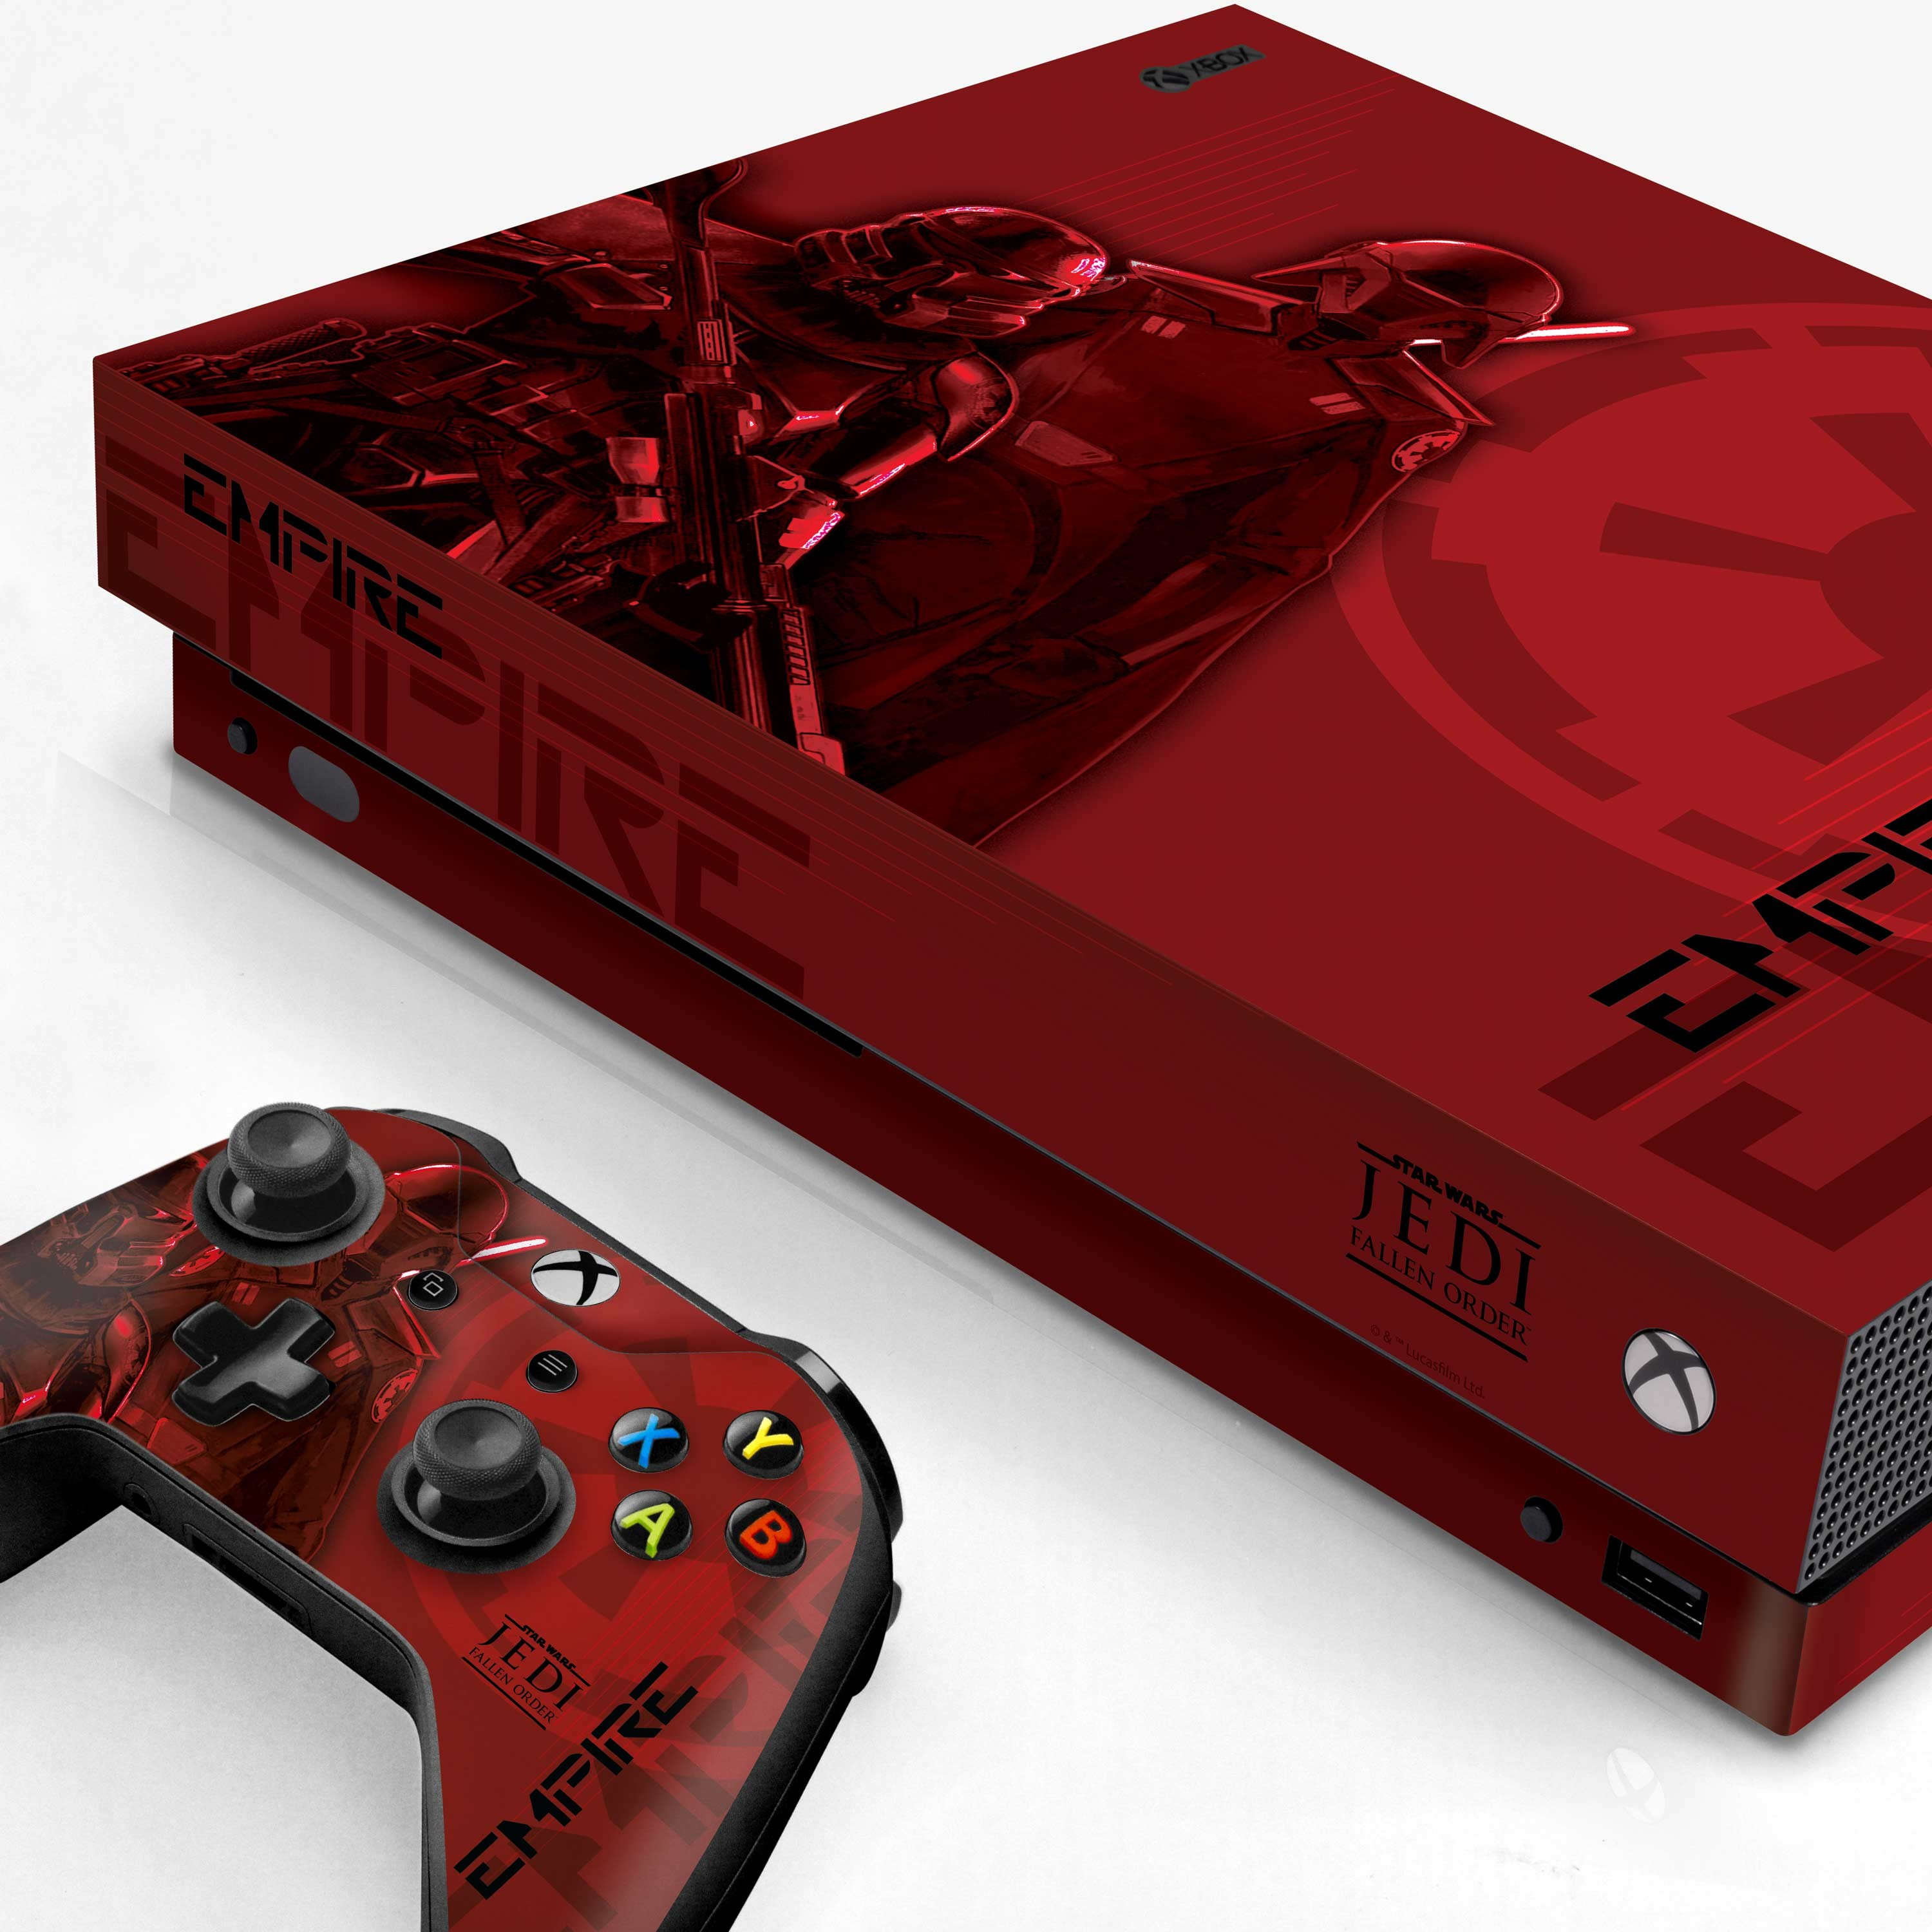 Xbox One X Console and Controller Skin with a Star Wars Jedi Fallen Order Inquisitor/Purge Trooper Design, Image 1